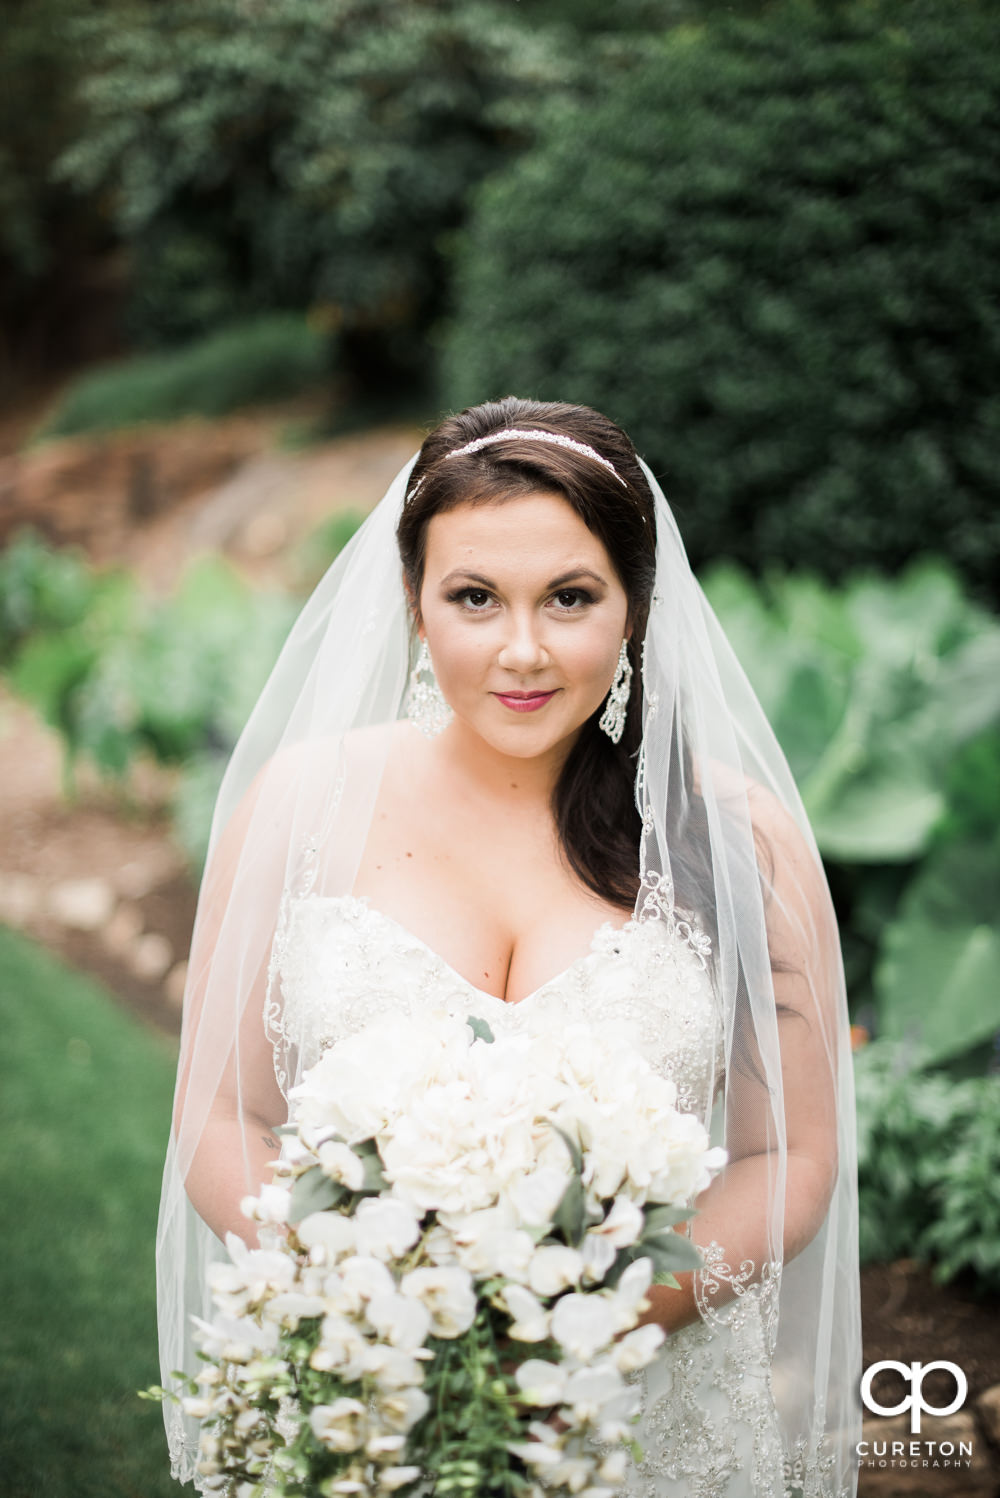 Bride with long veil wrapped around her during her bridal session at the Greenville Rock Quarry Garden.